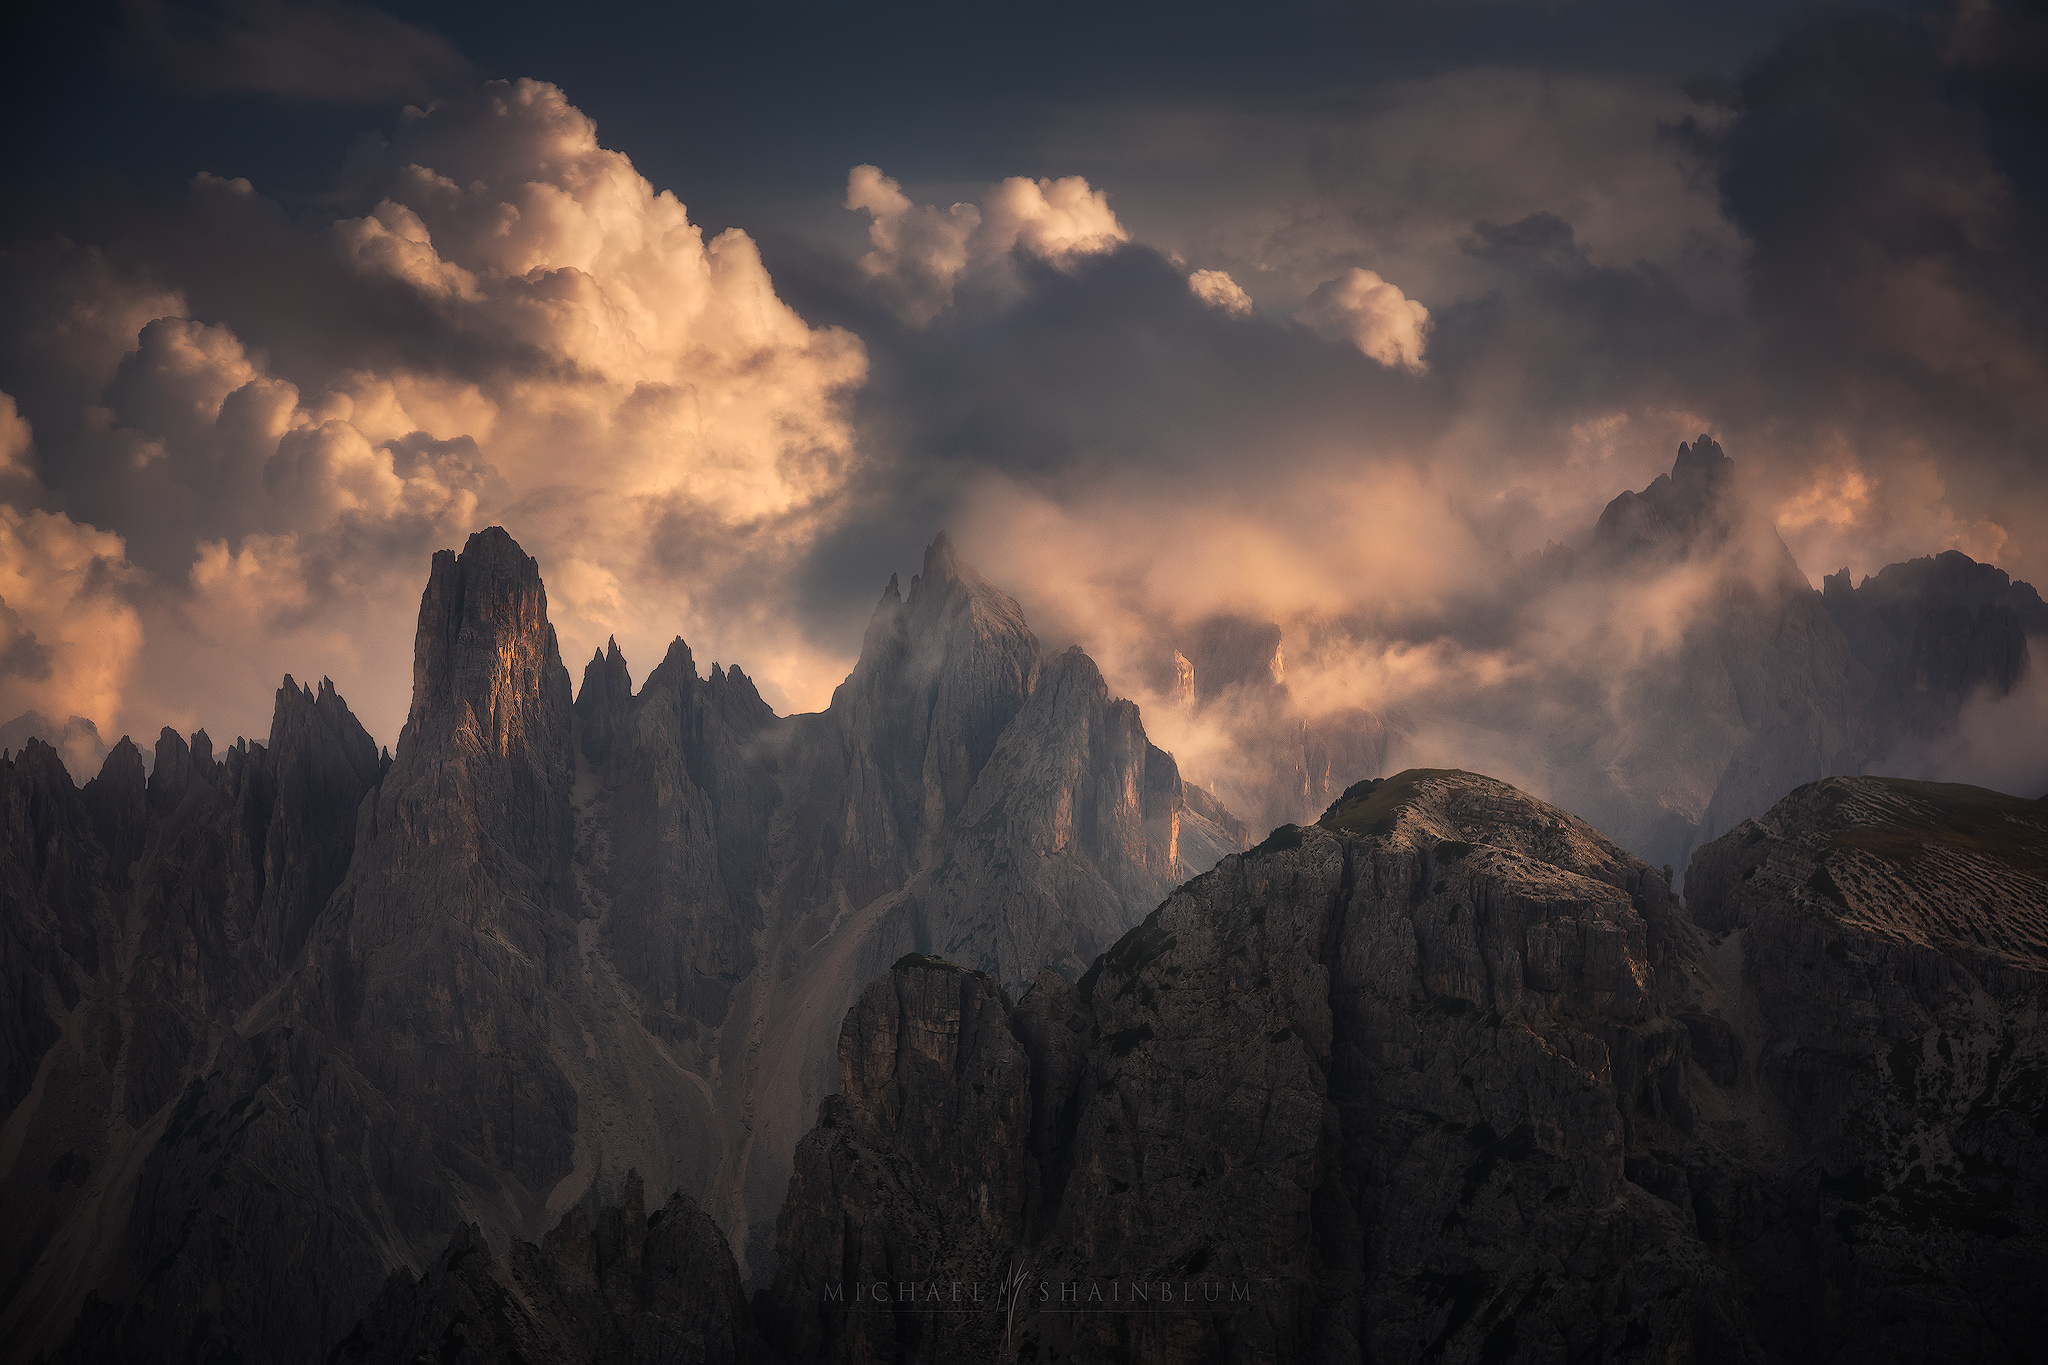 Tre Cime Dolomites Landscape Photo